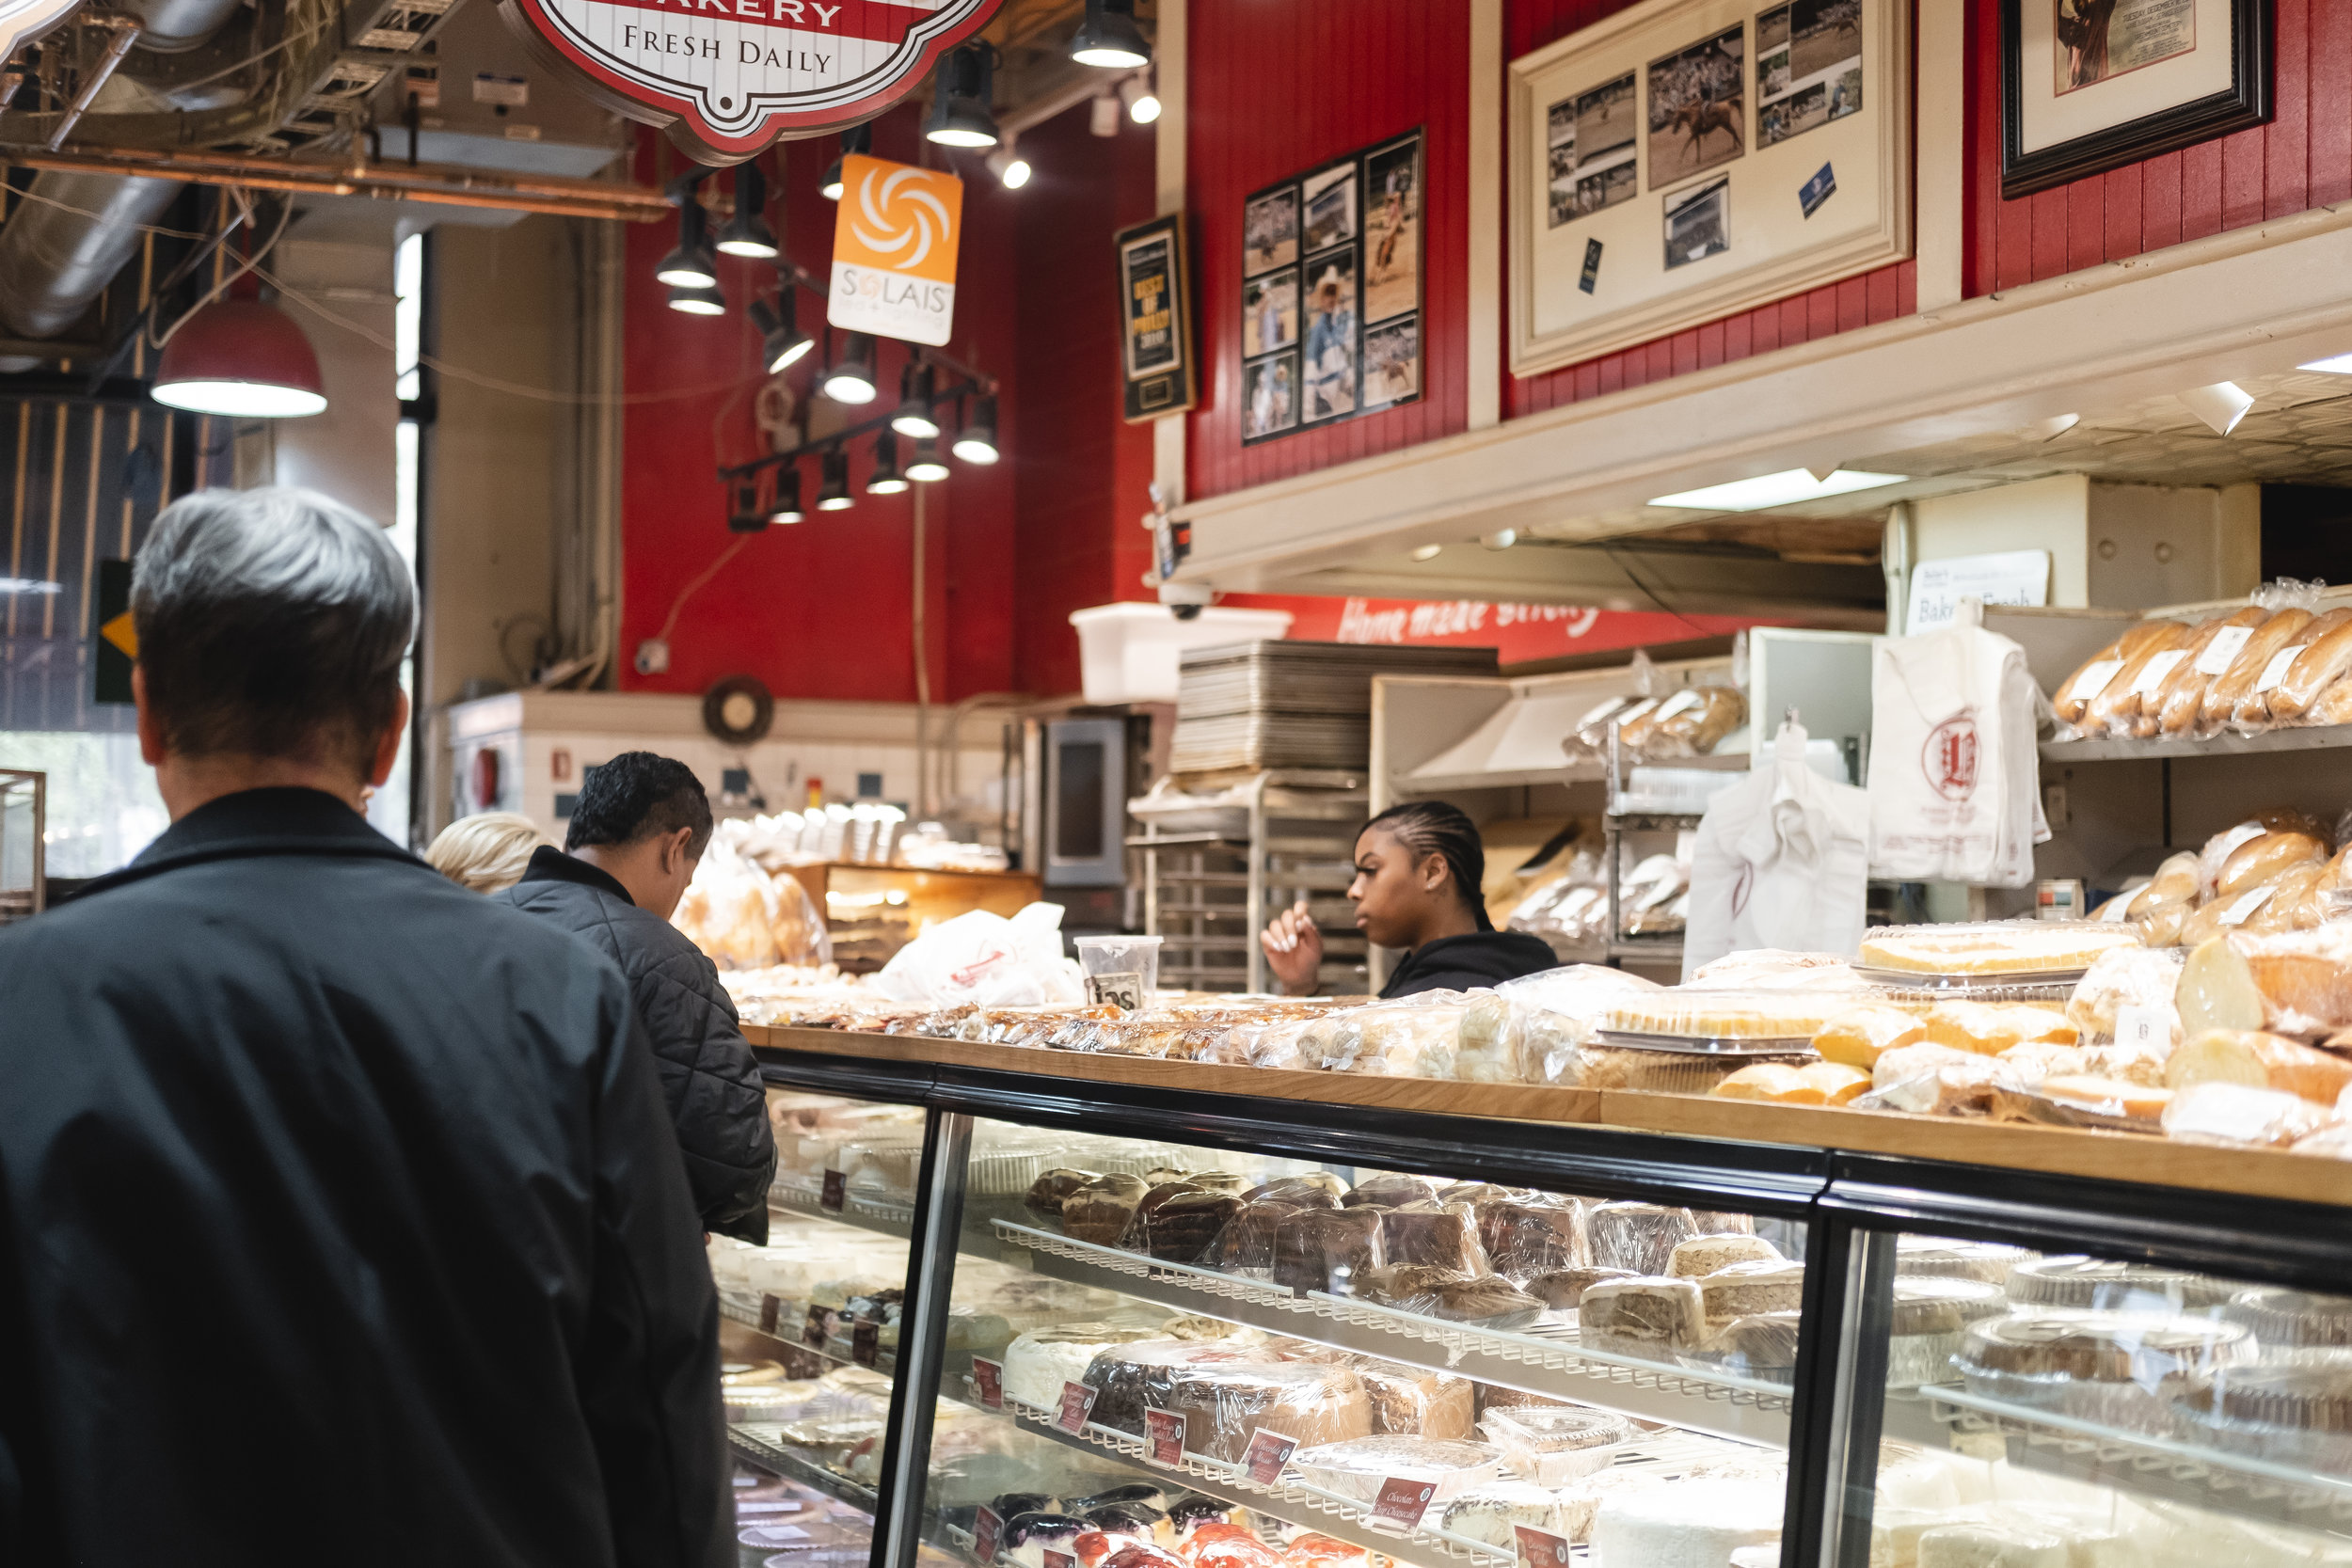 2019_READING TERMINAL MARKET_FOOD_THE PHILLY CHECKLIST-10.jpg